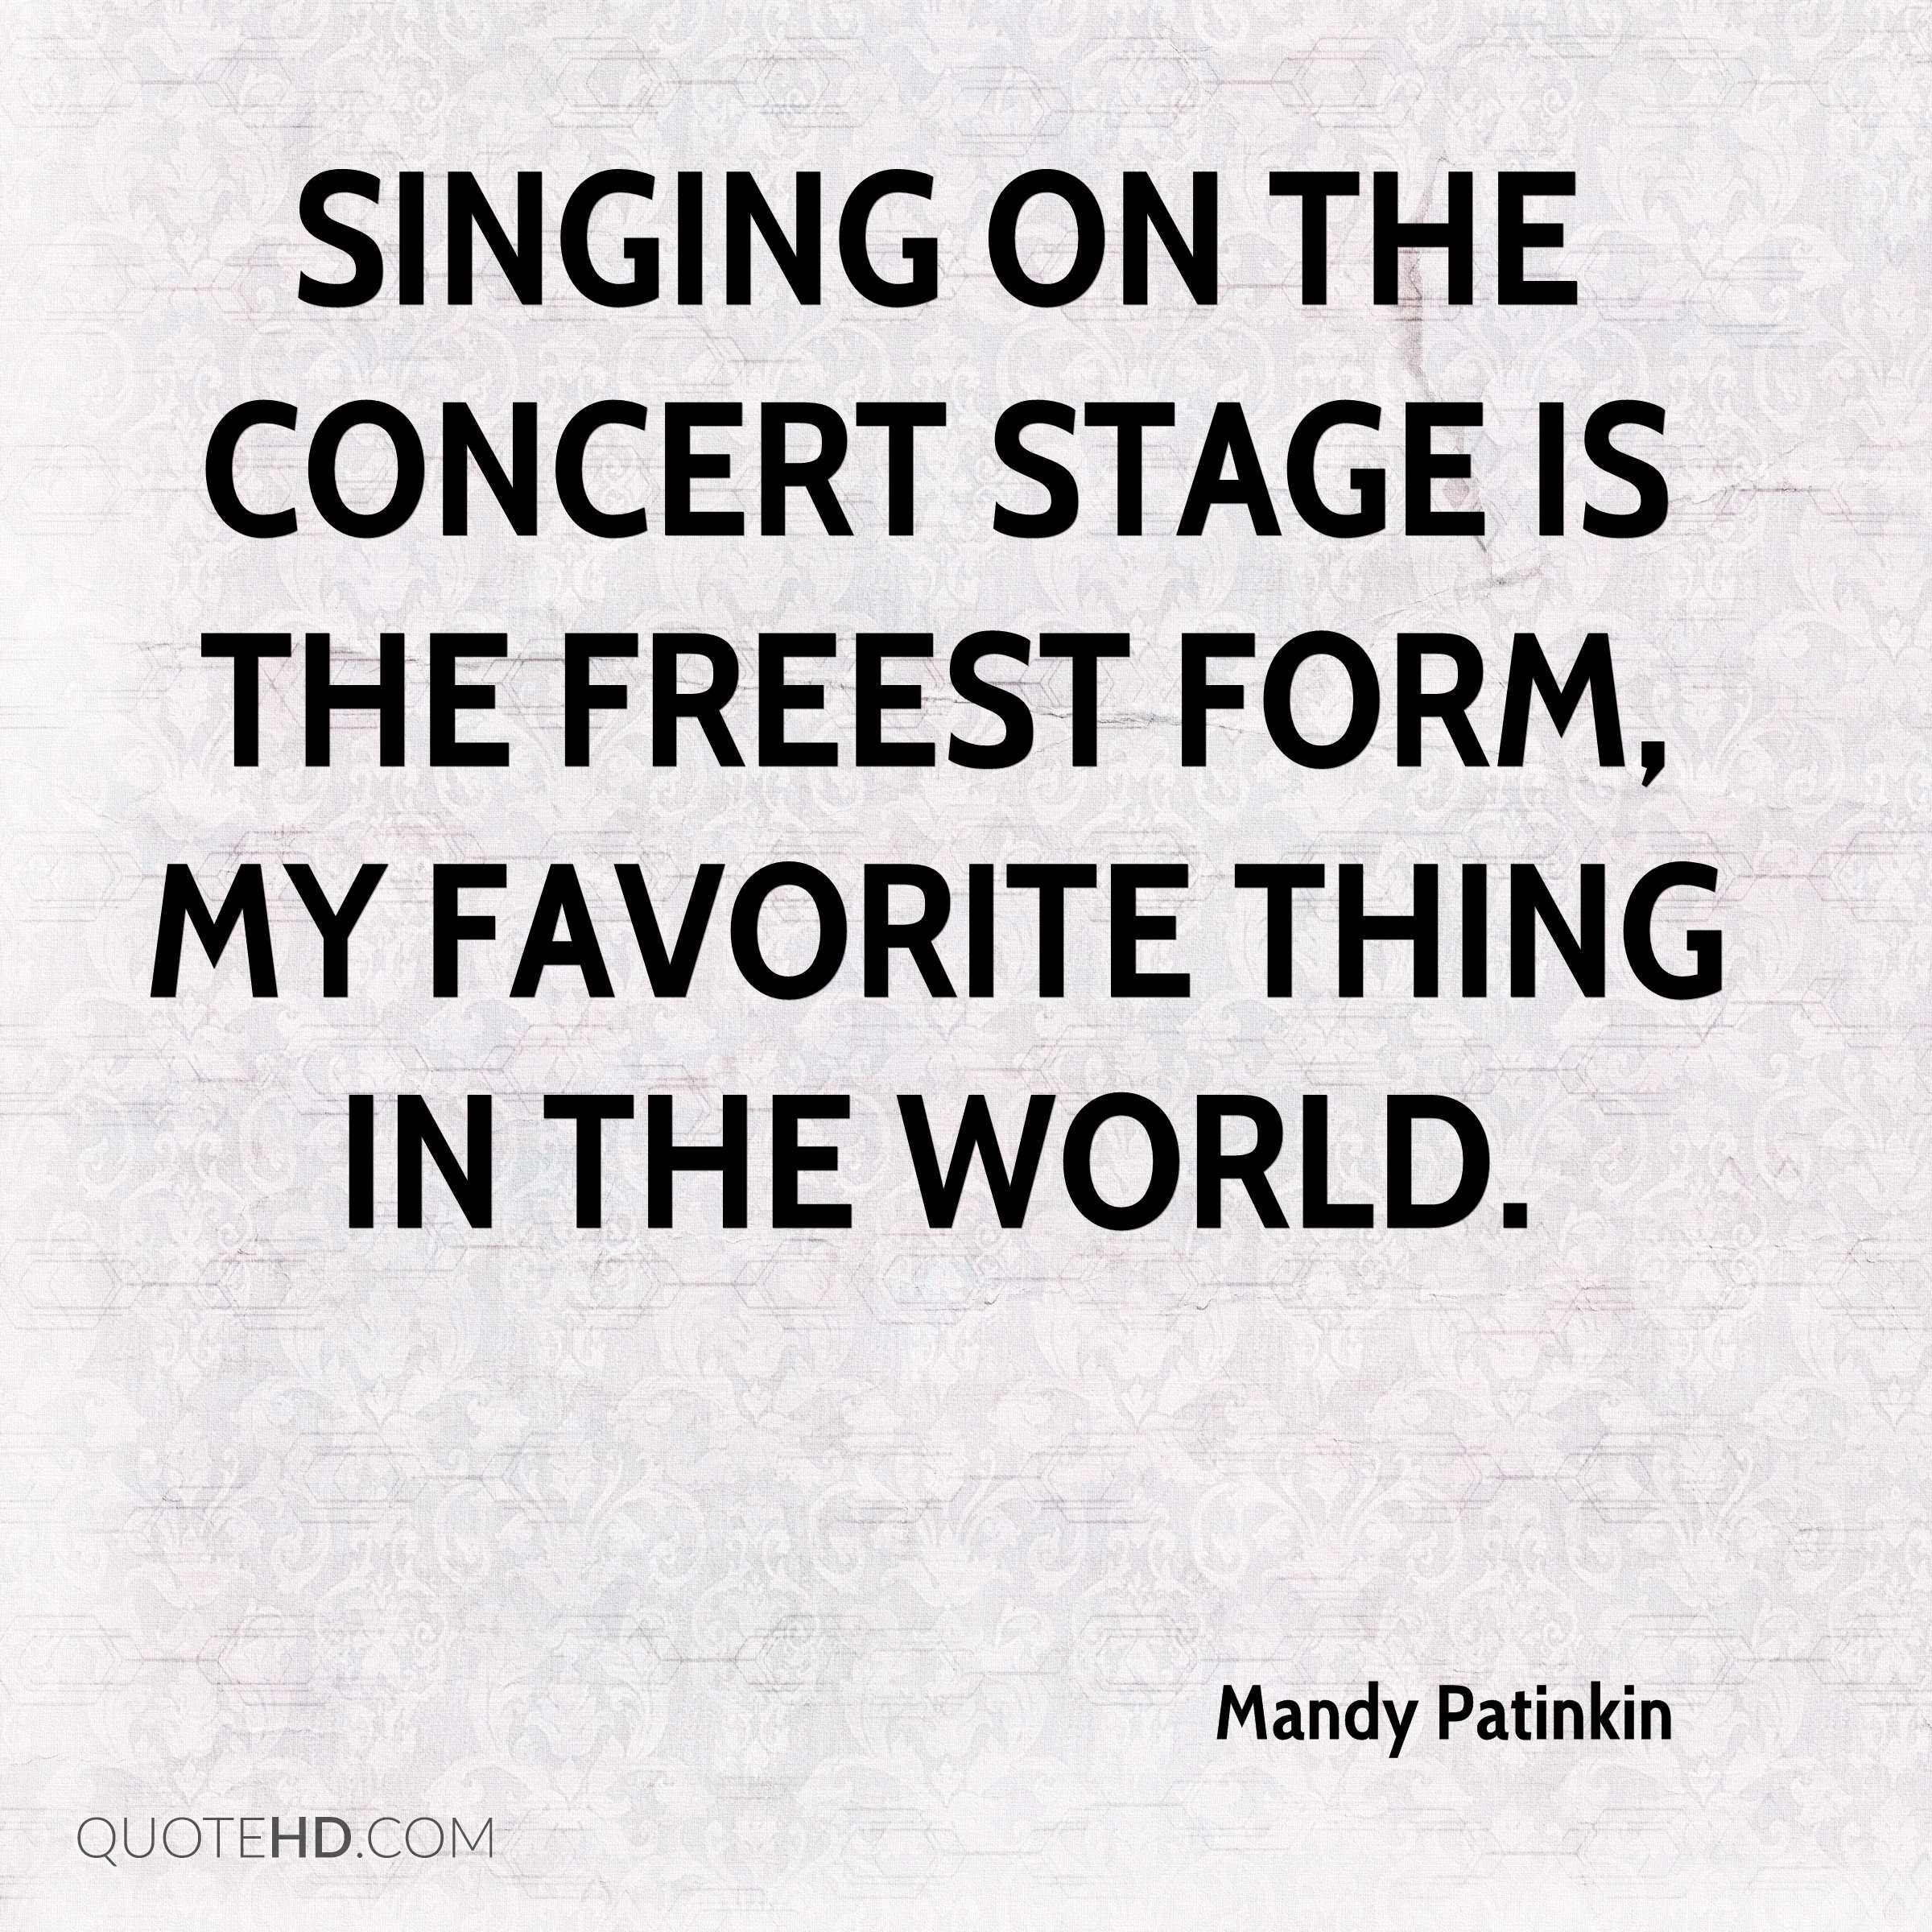 Singing on the concert stage is the freest form, my favorite thing in the world.